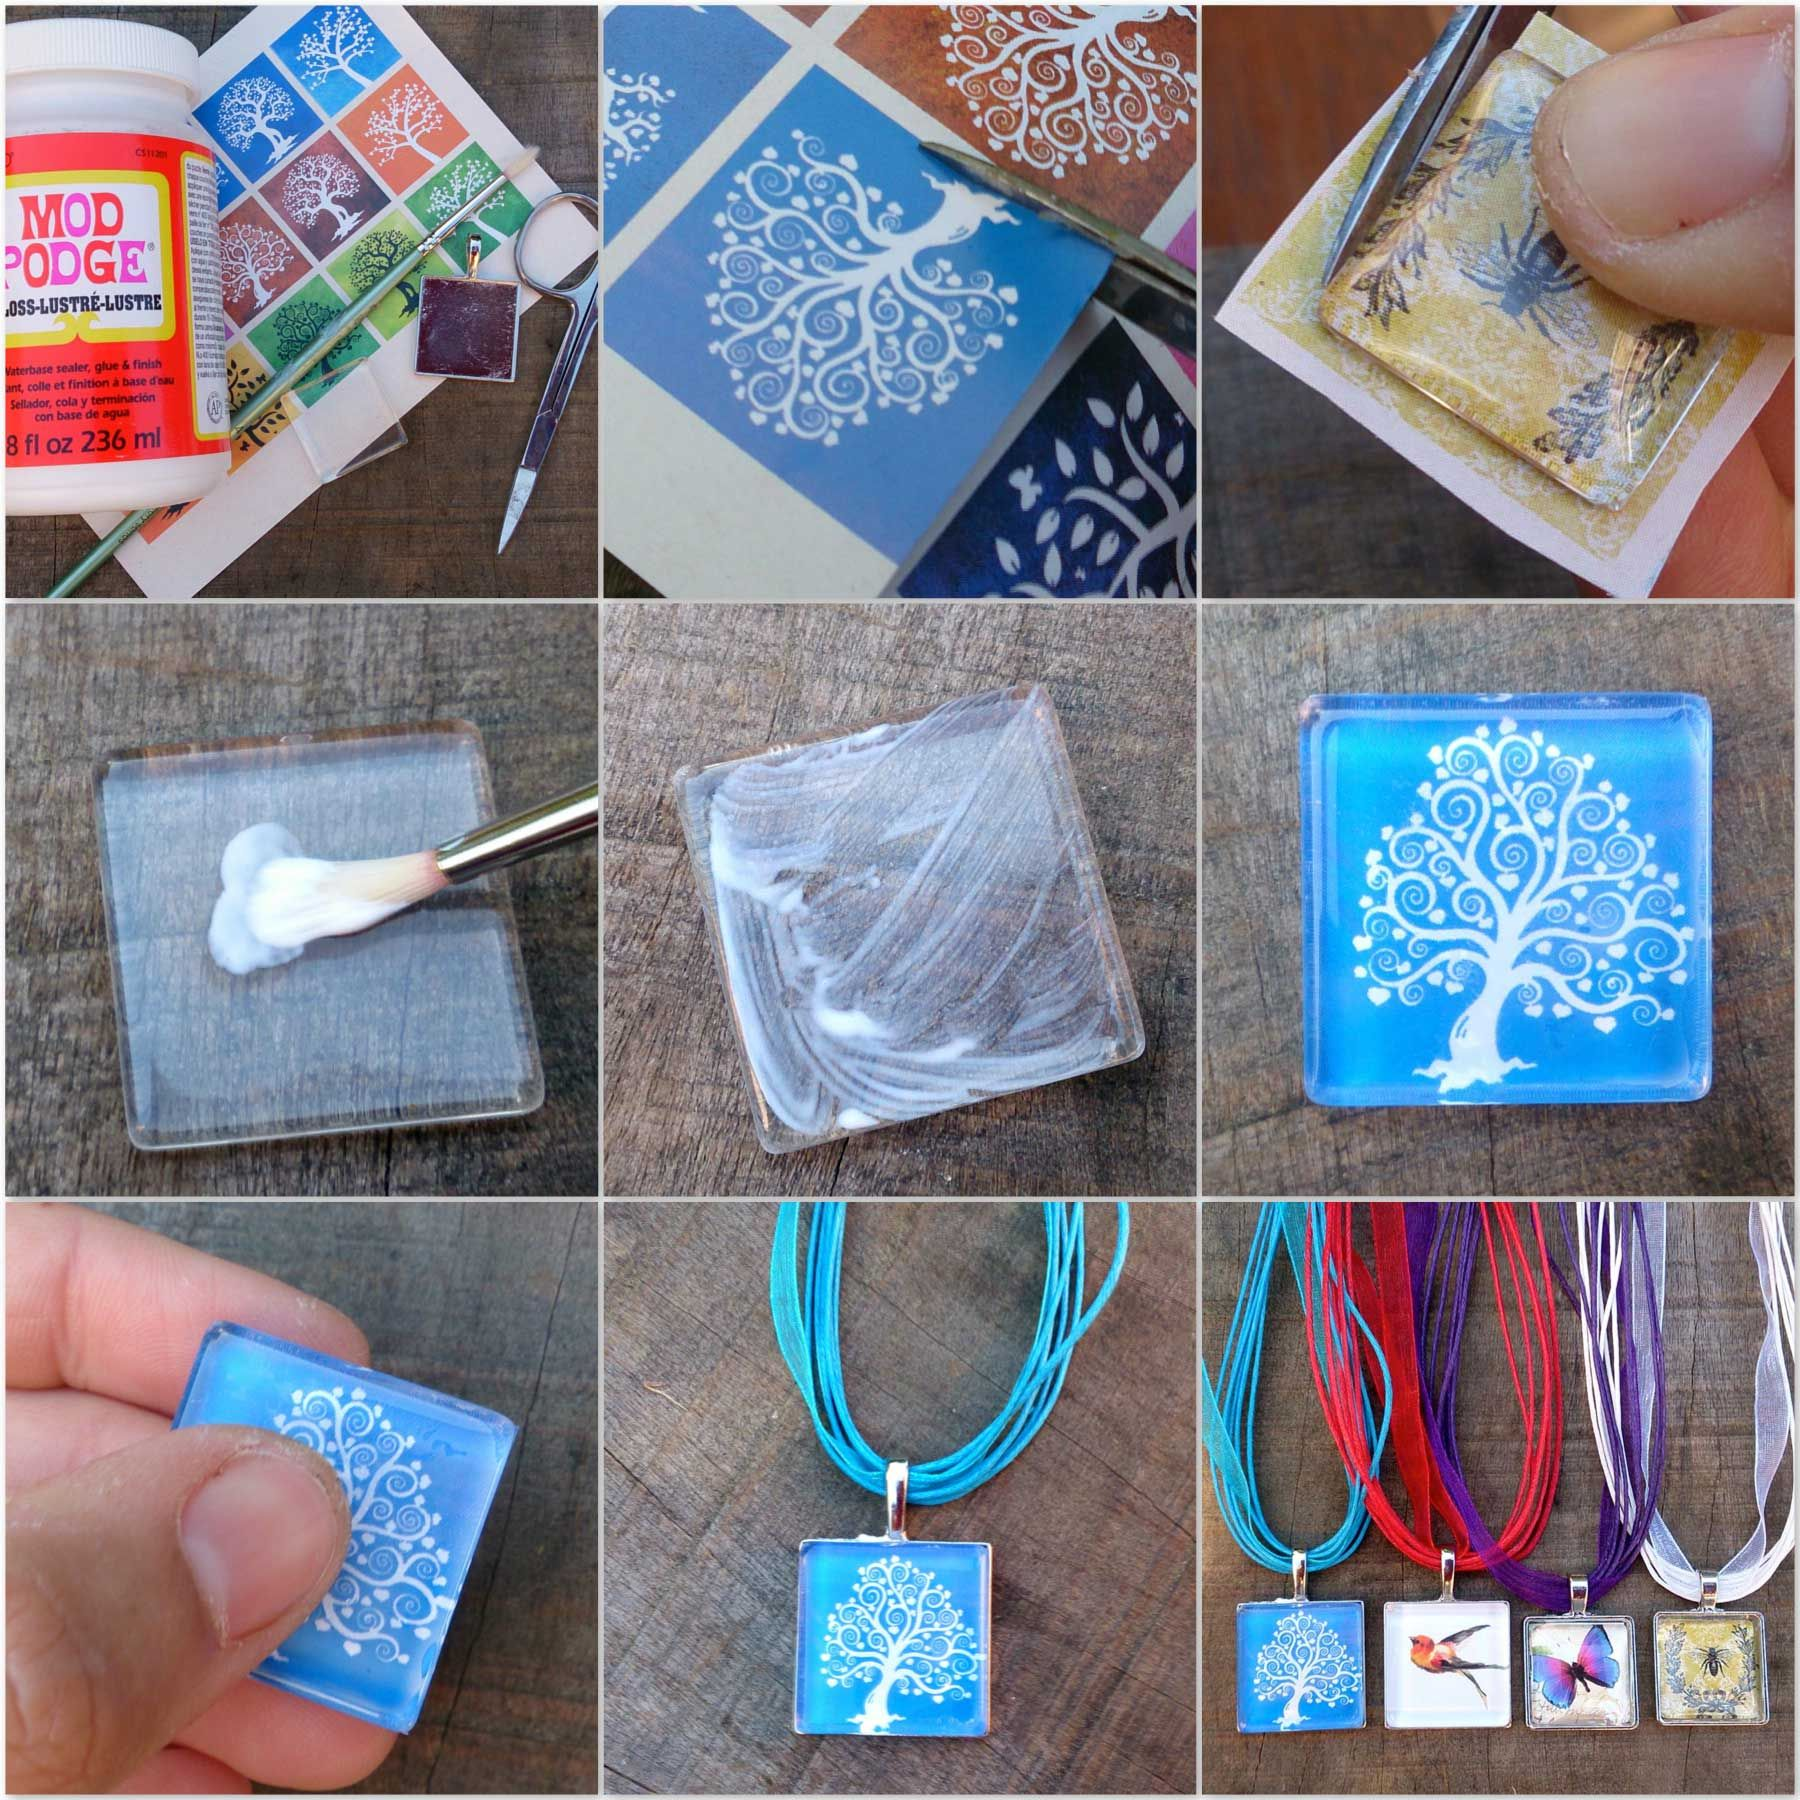 How to make a glass tile pendant using mod podge tutorial jewelery how to make a glass tile pendant using mod podge tutorial aloadofball Image collections